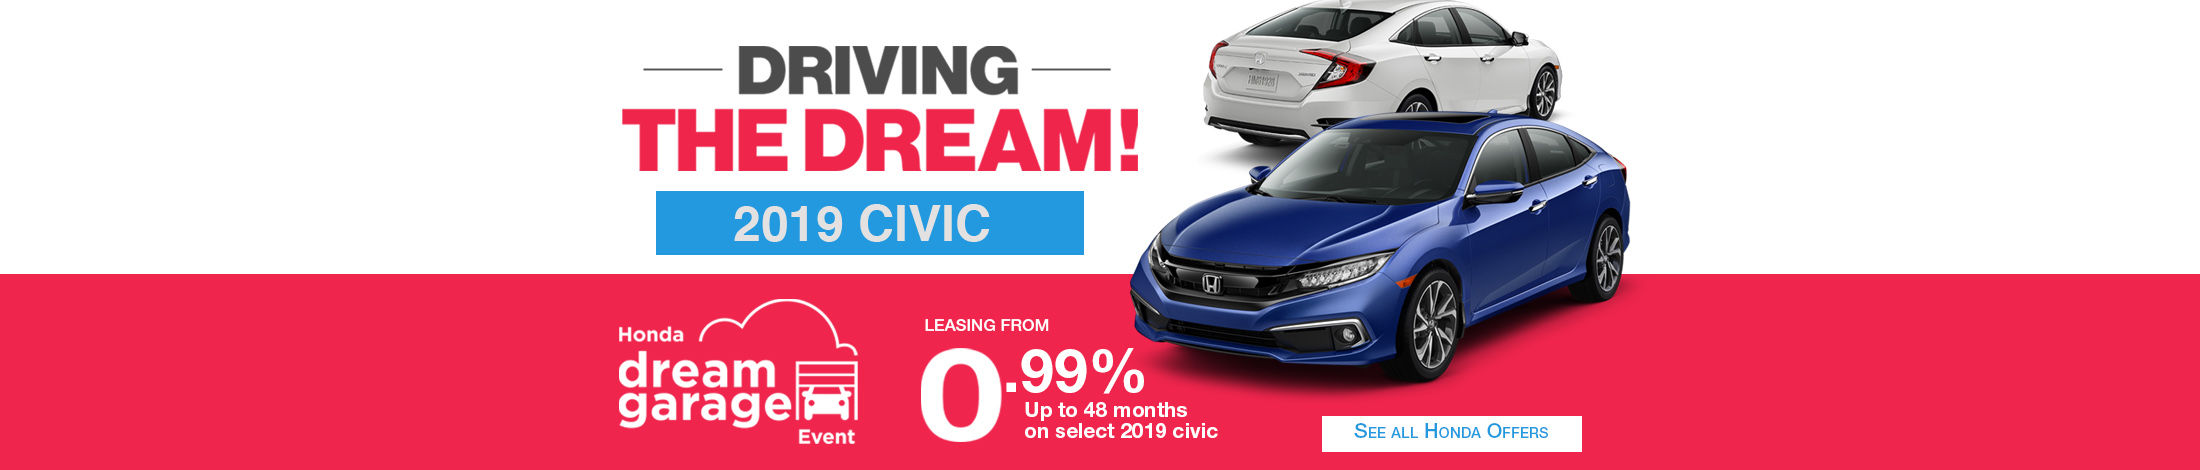 Honda driving the dream